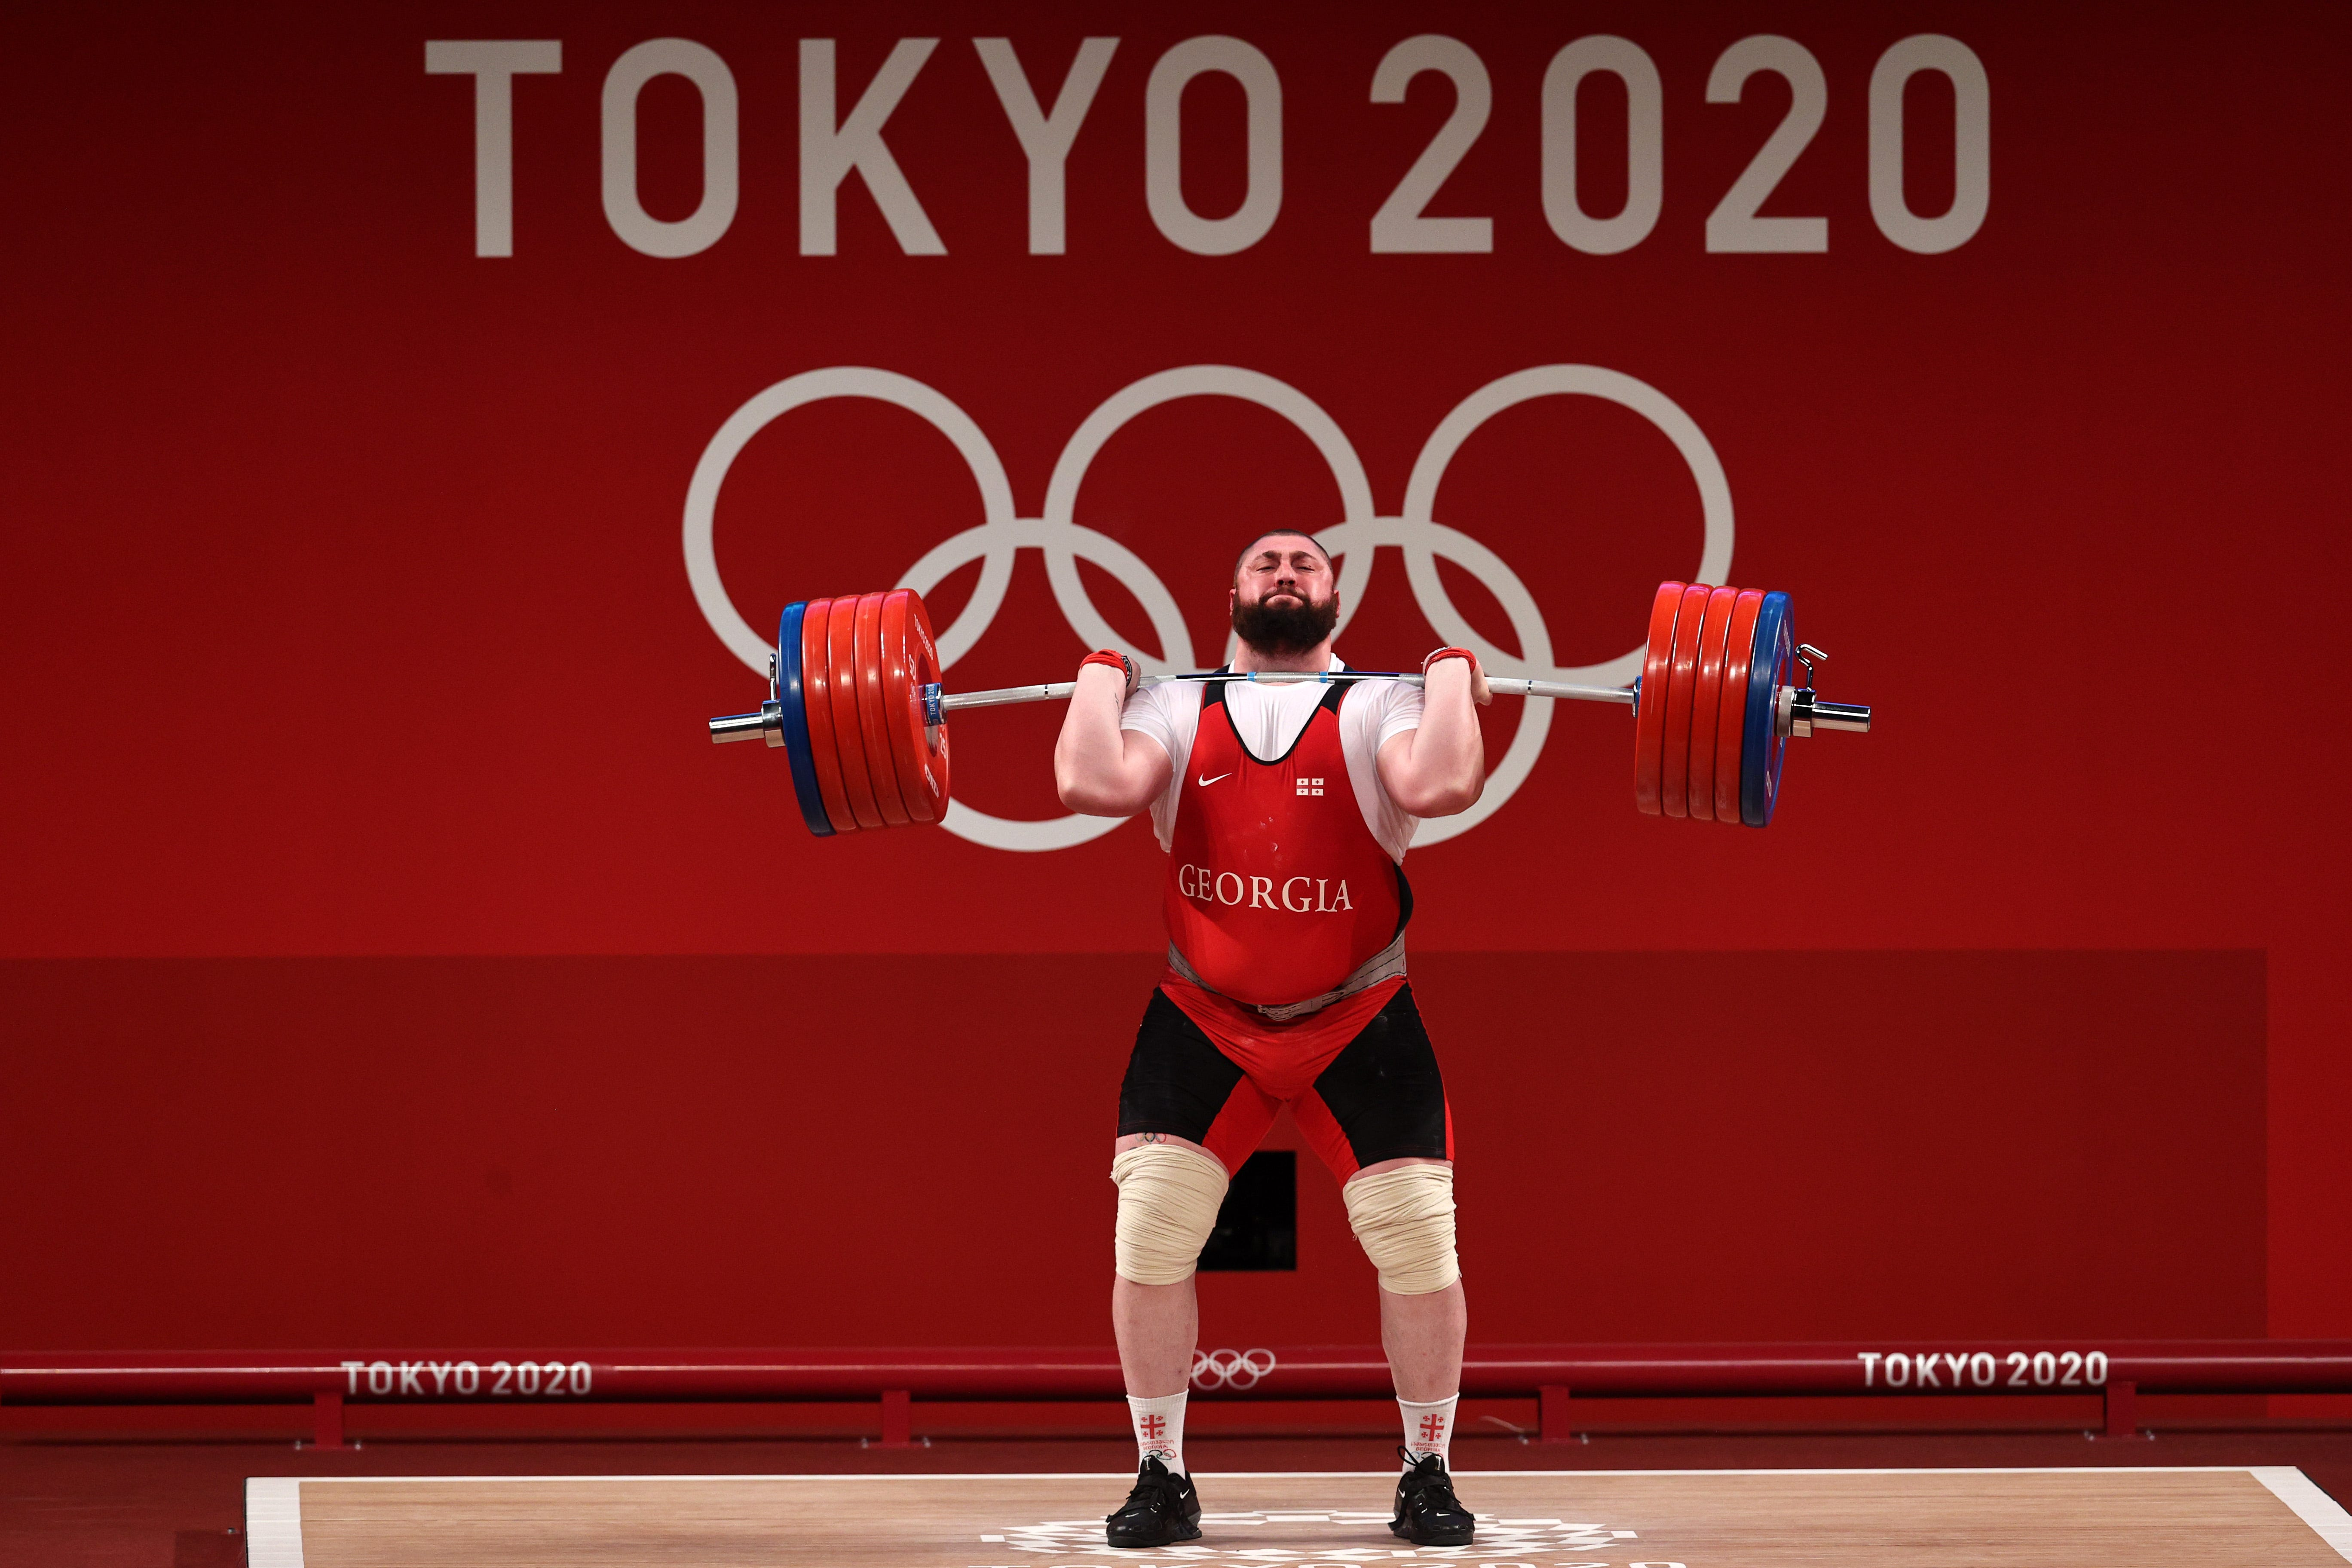 Georgian weightlifter breaks three world records, lifts nearly 1,100 pounds at Olympics